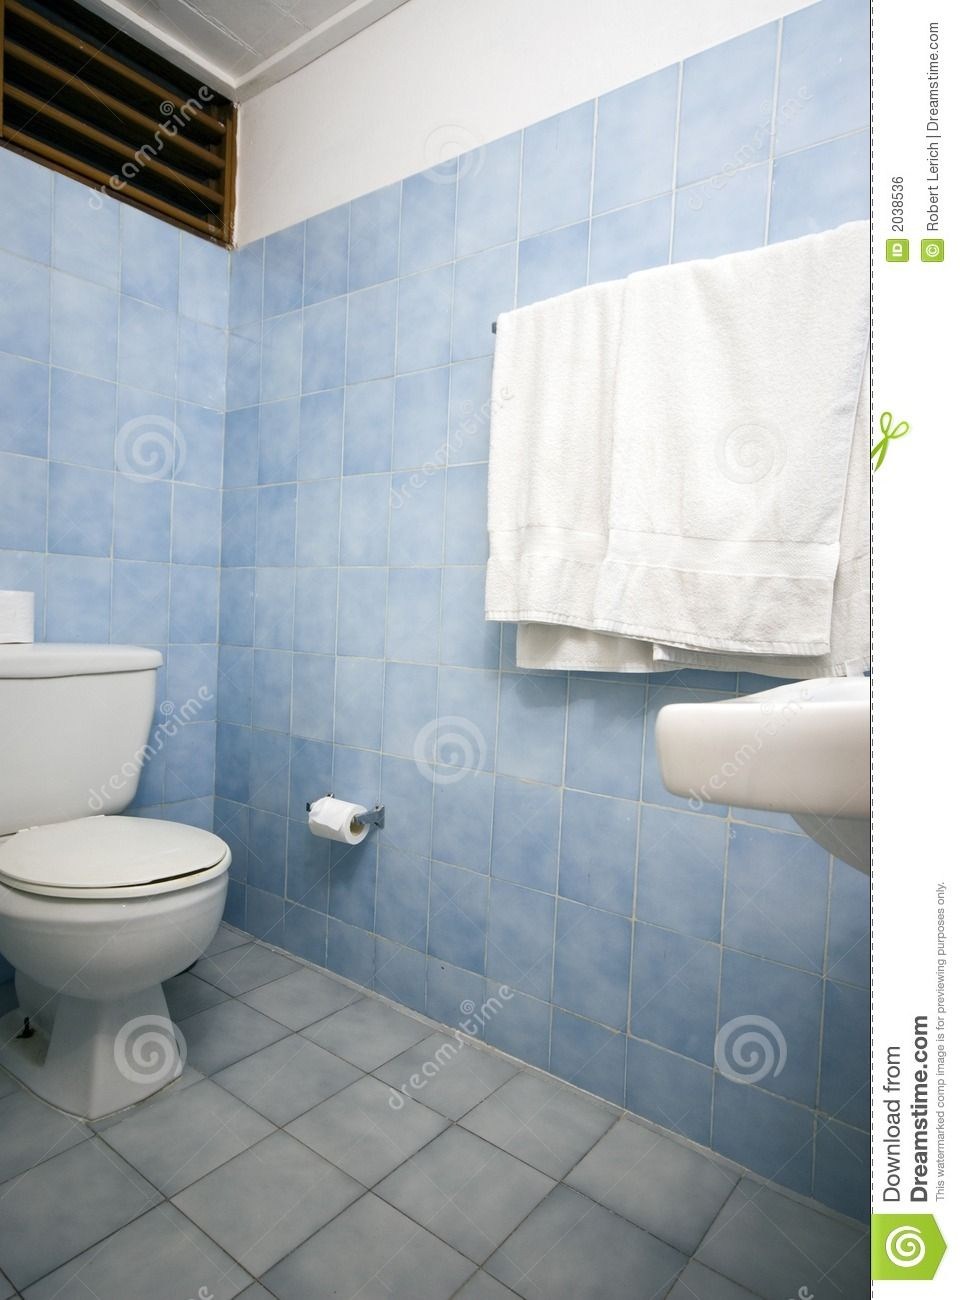 blue tile bathroom decorating ideas - Google Search | Home ...